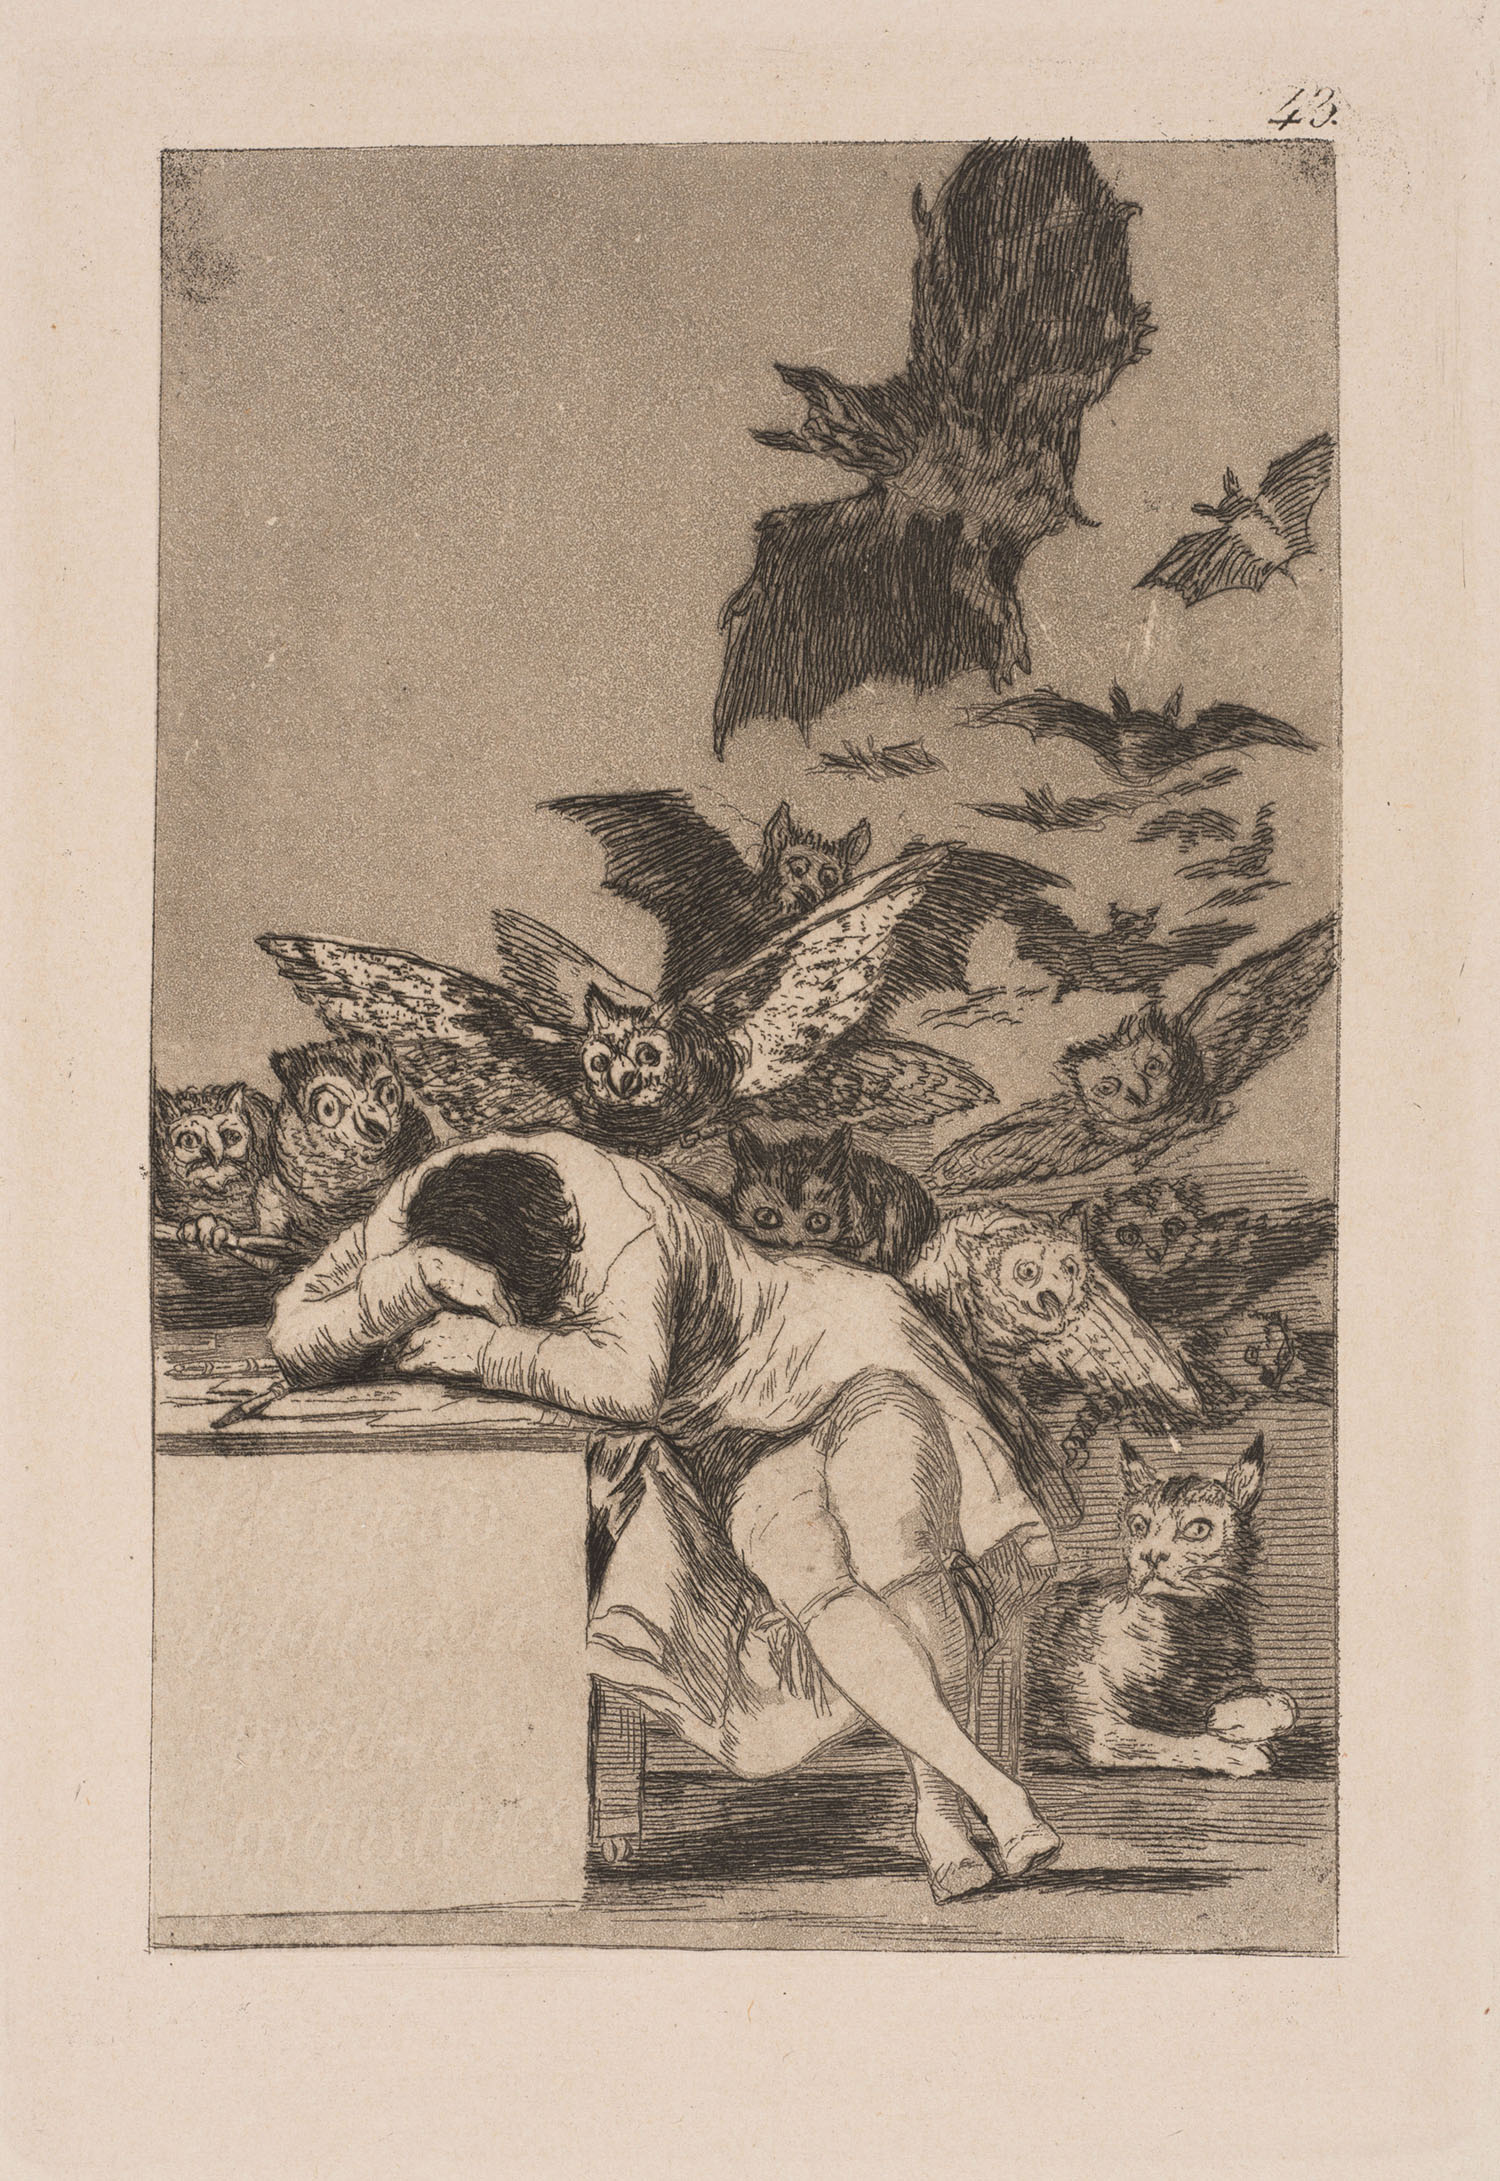 El sueño de la razón produce monstruos (The Sleep of Reason Produces Monsters), Francisco de Goya, 1799. Museum number CIRC.635-1966. © Victoria and Albert Museum. Goya's commentary as included in the Circulation Department's label: 'Imagination abandoned by Reason produces impossible monsters: united with her, she is the mother of the arts and the source of their wonders'